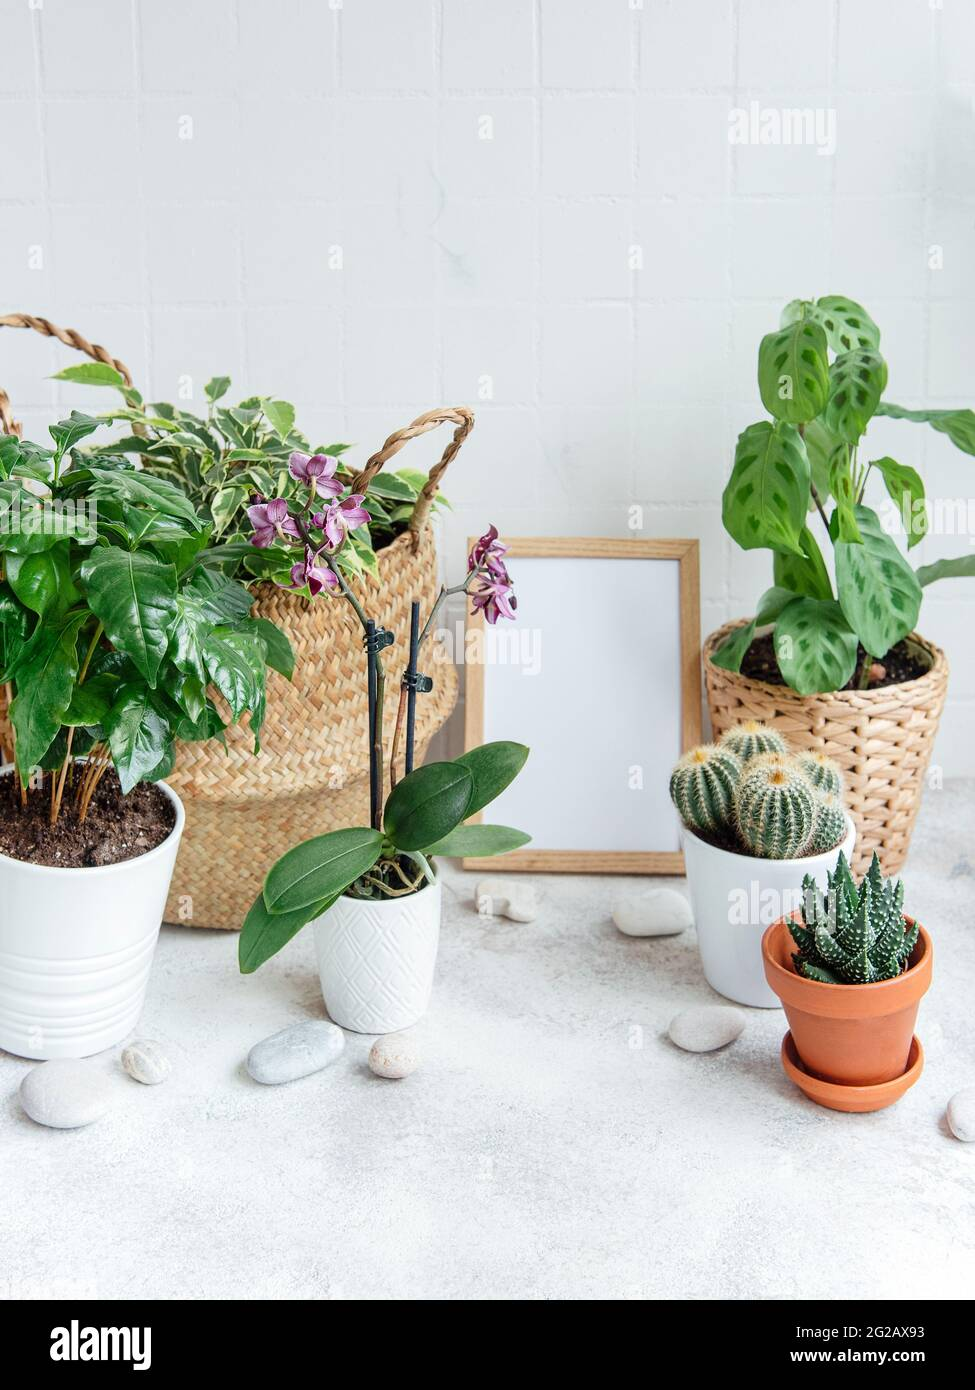 Room filled with a lot of modern plants, home garden with mock up poster frame. Stock Photo